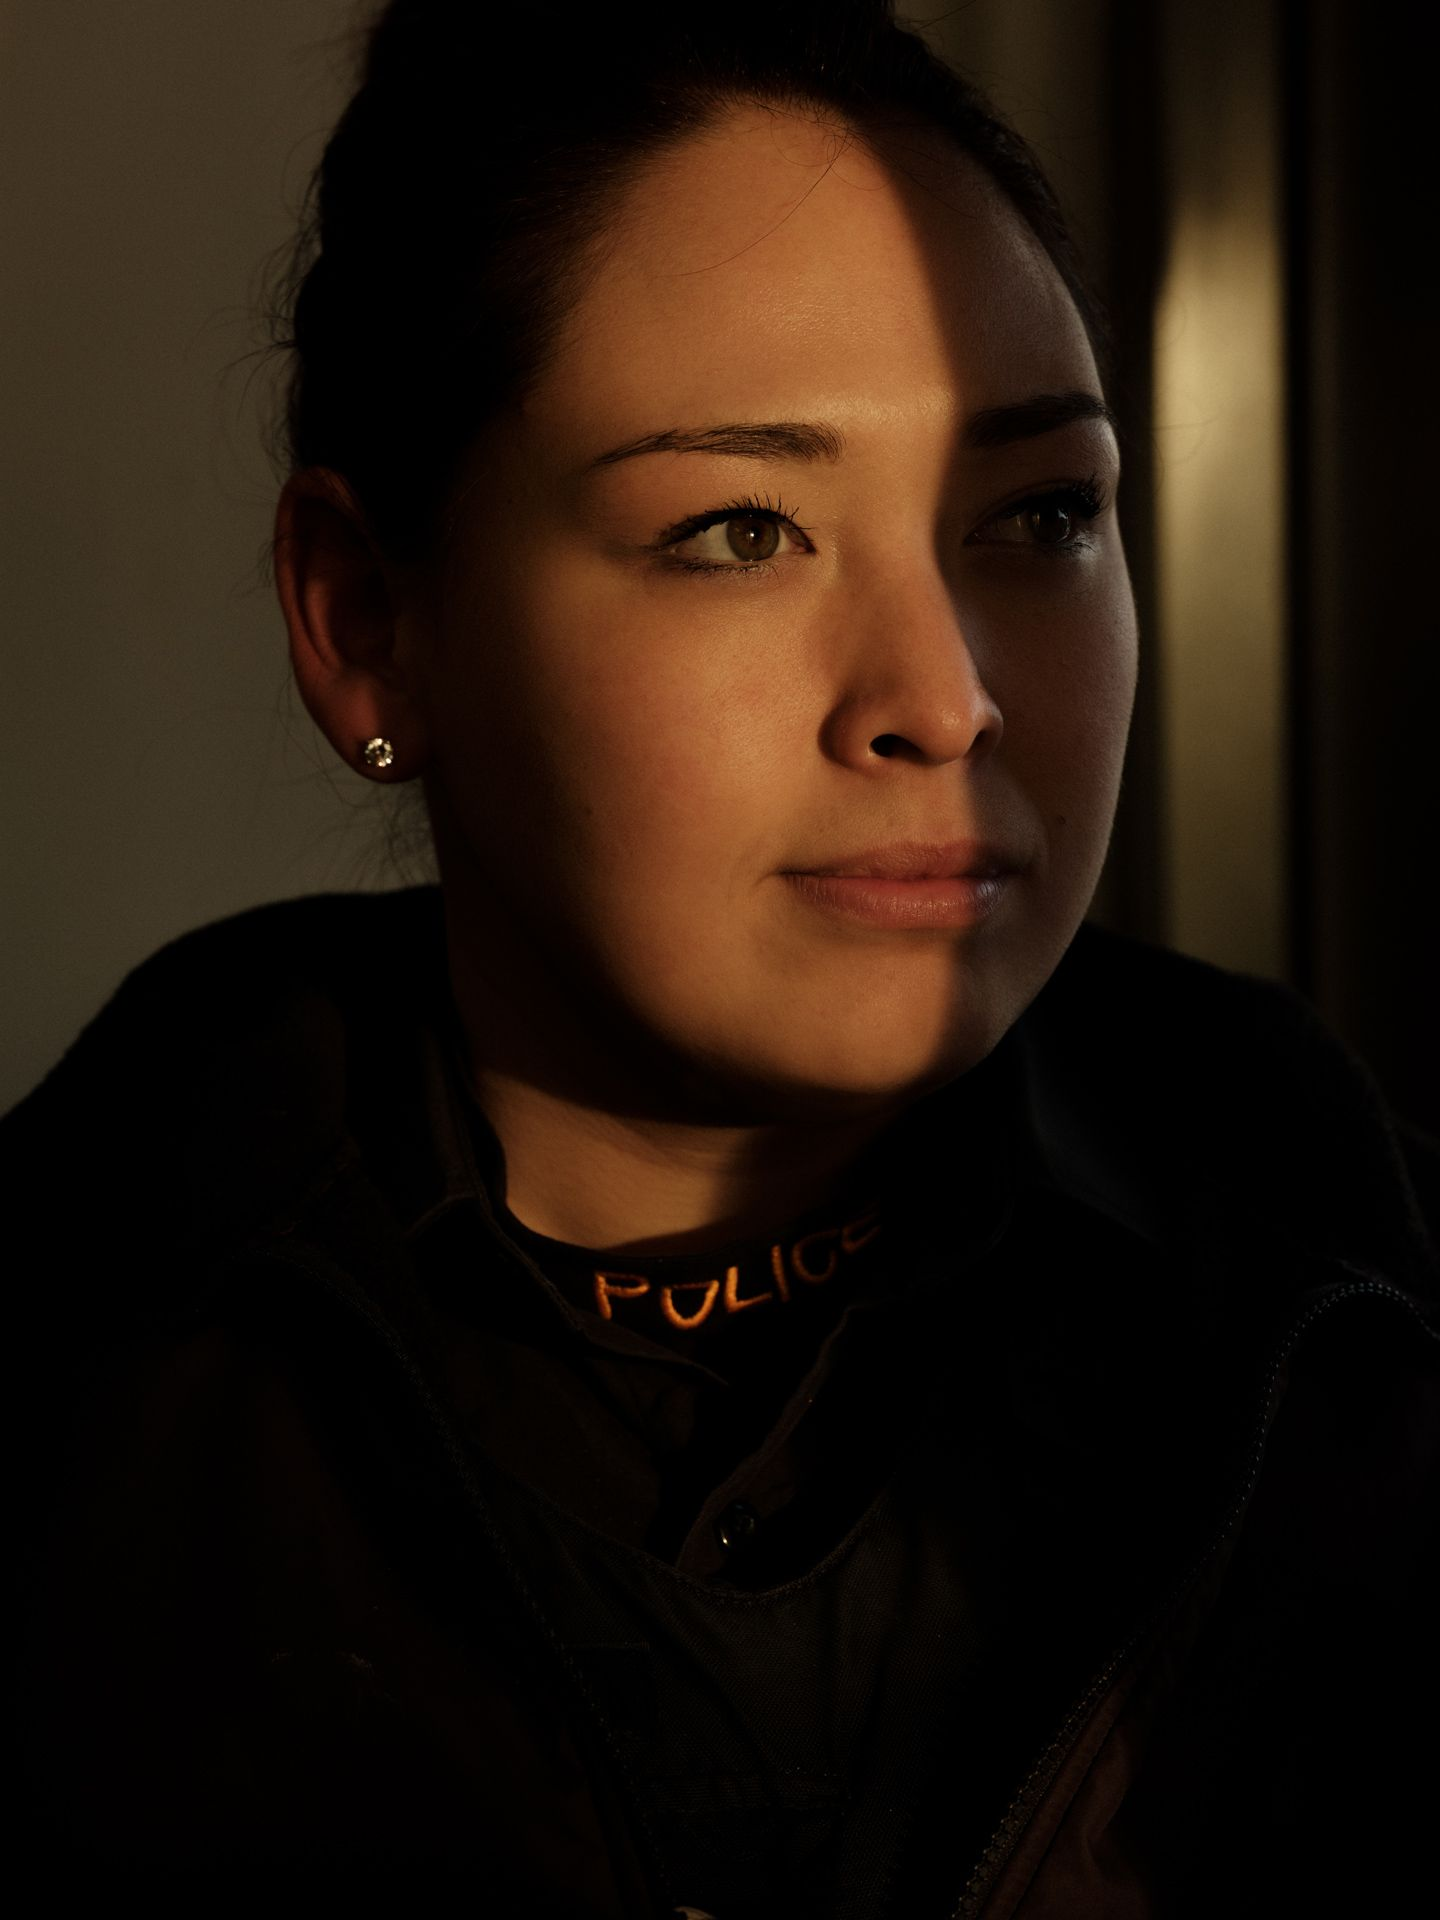 portrait of constable Pamela Stevenson, the only female Inuk police officer on the Kativik Regional Police Force in Nunavik by Alexi Hobbs for Air Inuit